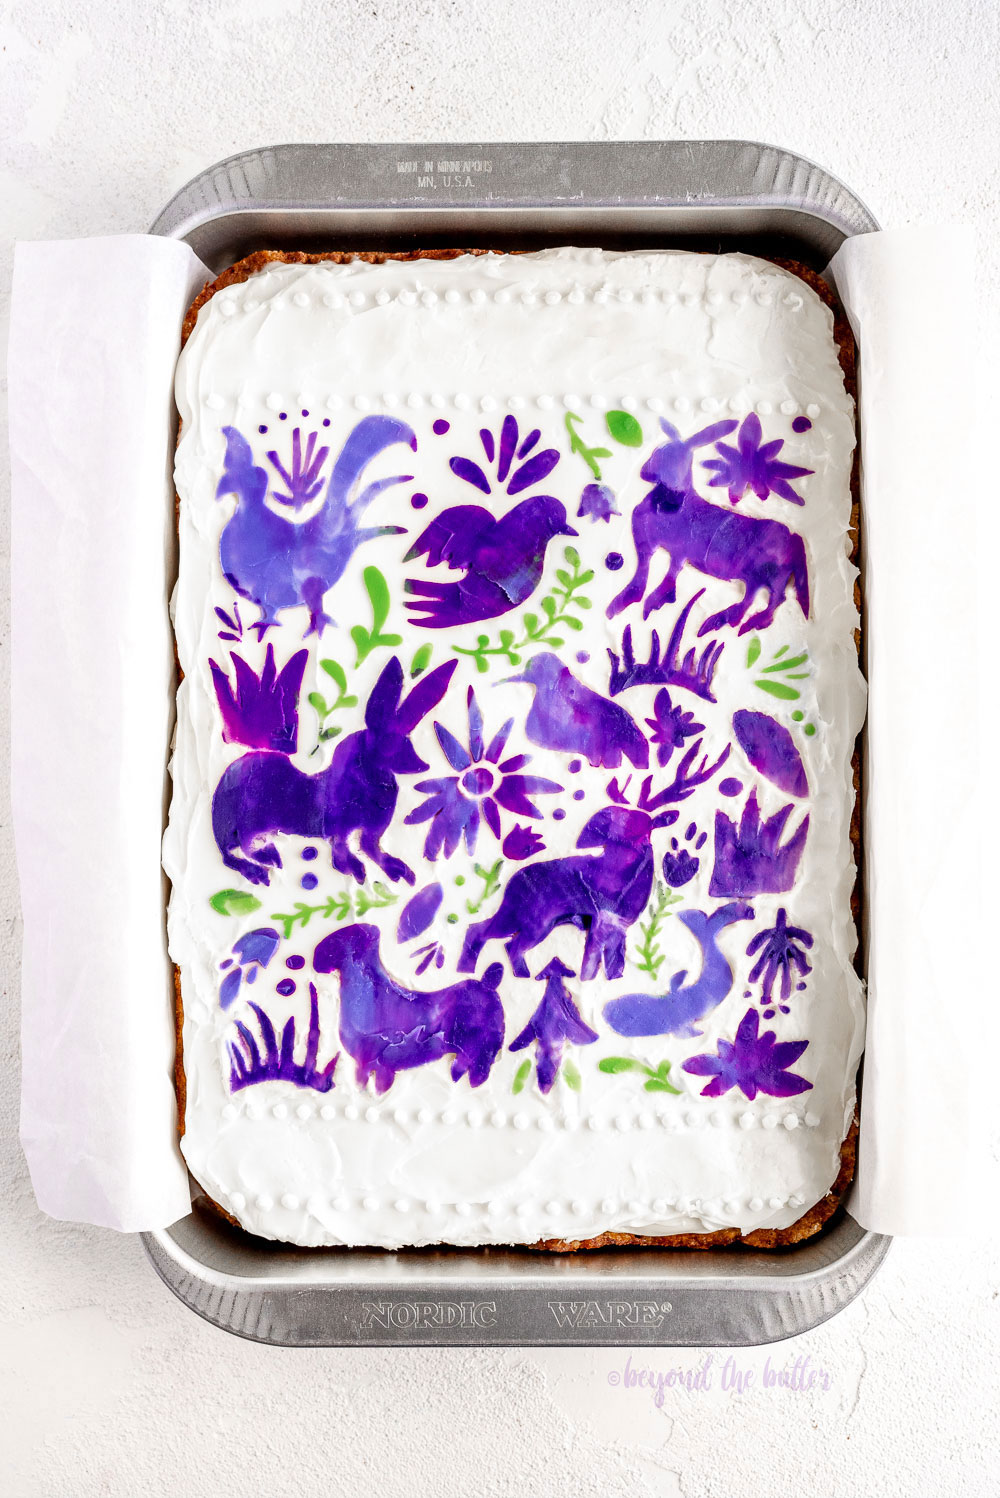 Hummingbird Sheet Cake with White Chocolate Cream Cheese Frosting | Overhead photo of Hummingbird Sheet Cake that's topped with a white chocolate frosting, and stenciled using purple and green frosting | Image and Copyright Policy: © Beyond the Butter, LLC.